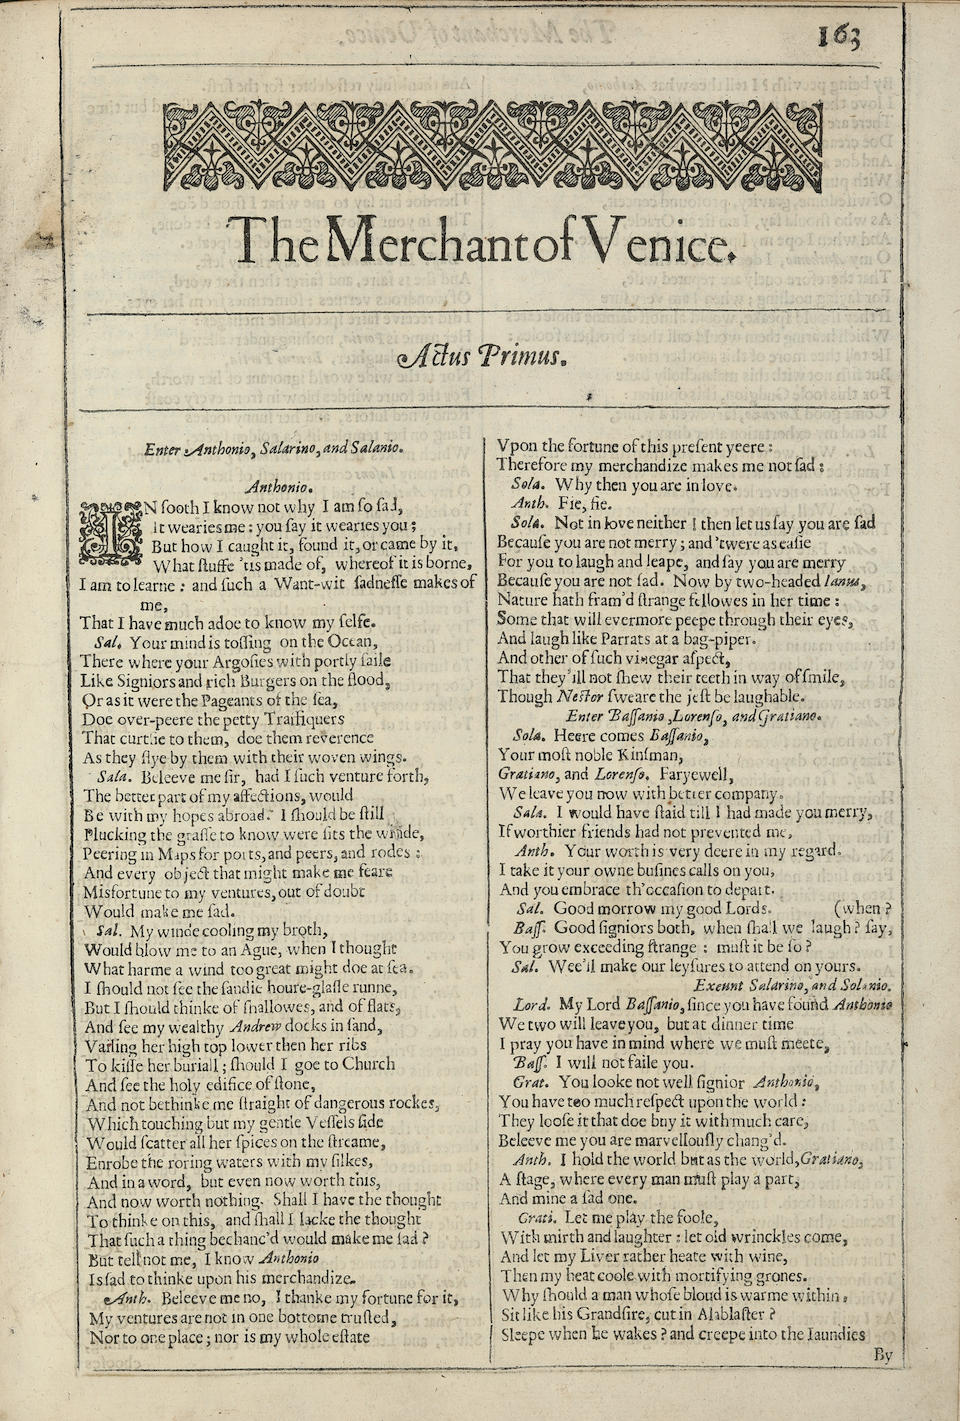 SHAKESPEARE, WILLIAM. The Merchant of Venice. [London: Printed for Thomas Cotes, 1632.]